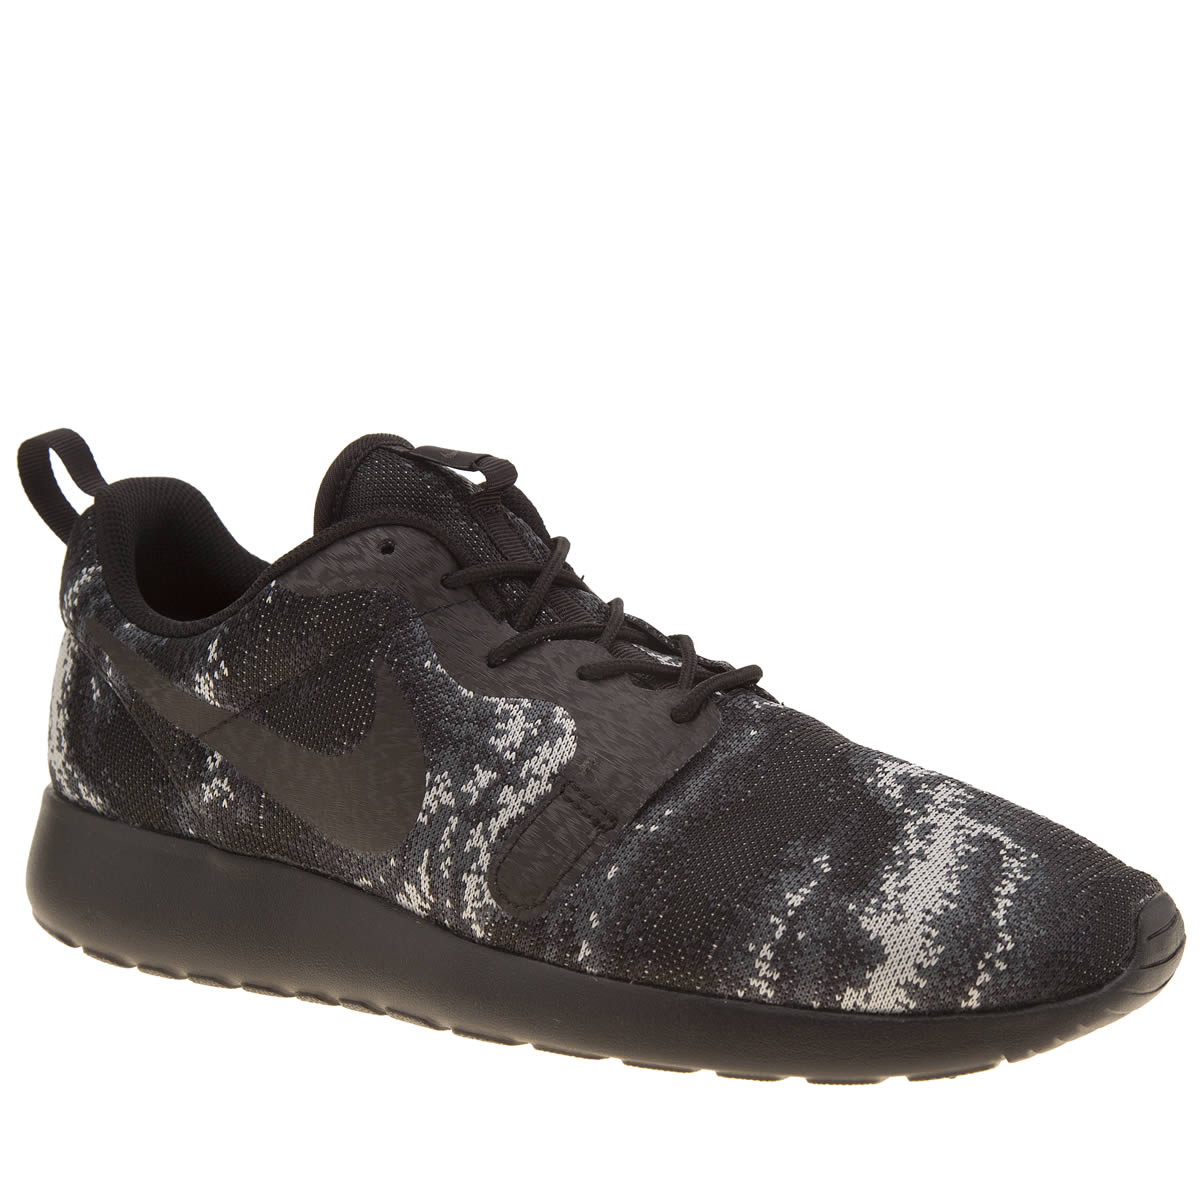 jrseu Mens Black & Grey Nike Roshe One Kjcrd Trainers | schuh